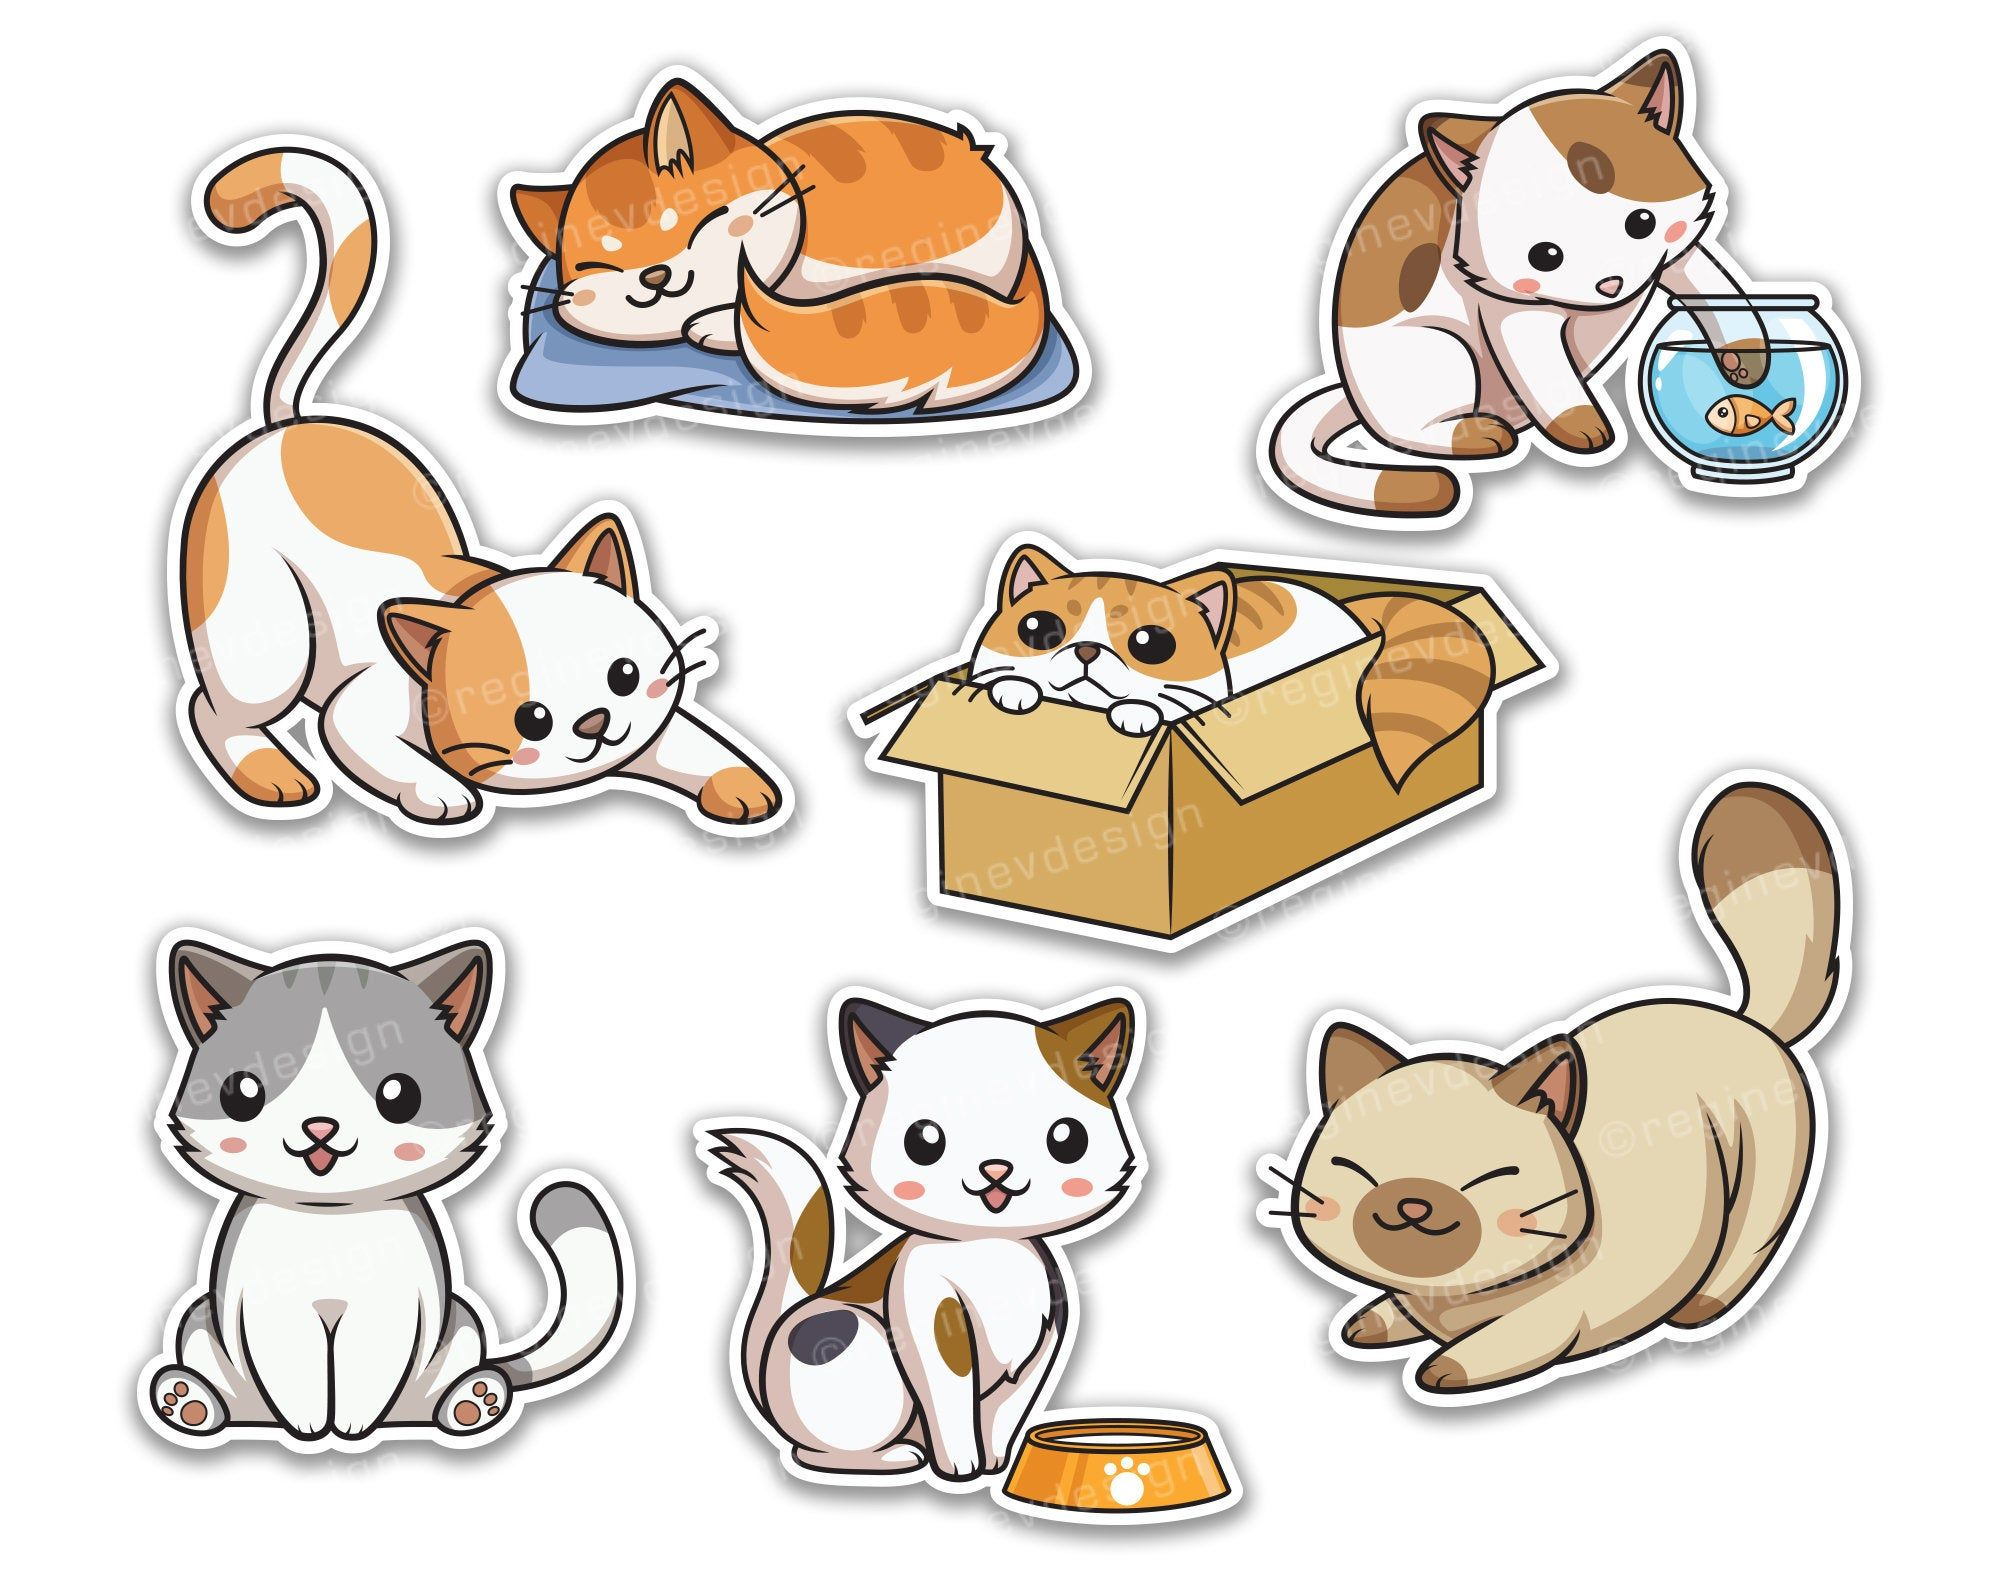 Cute Cat Clipart Kitten Sticker Pussycat Vector Kawaii Chibi